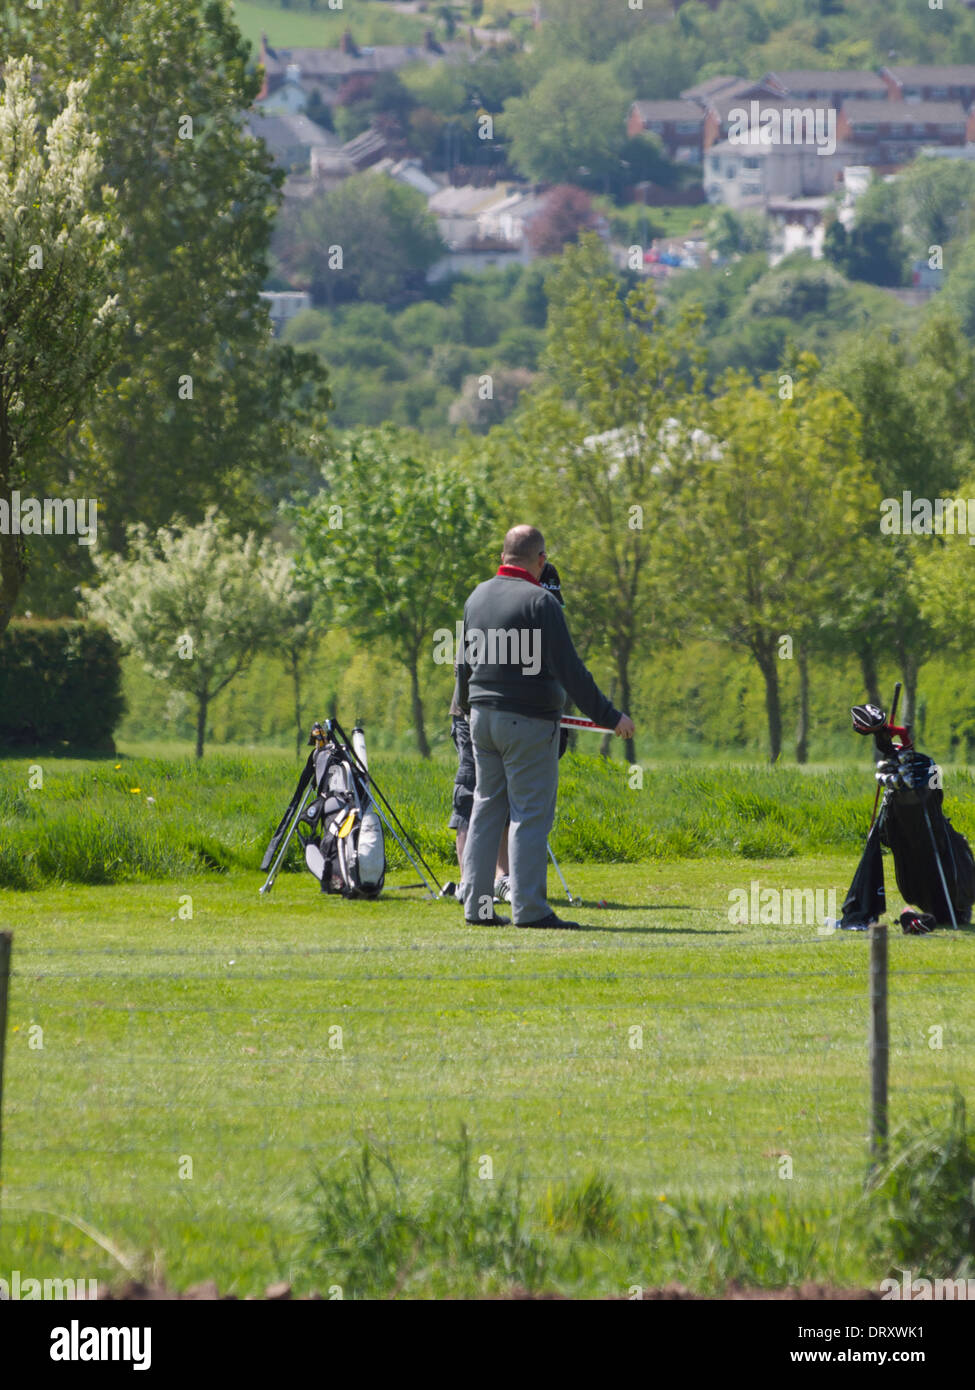 Two (2) golfers waiting to tee off - Stock Image